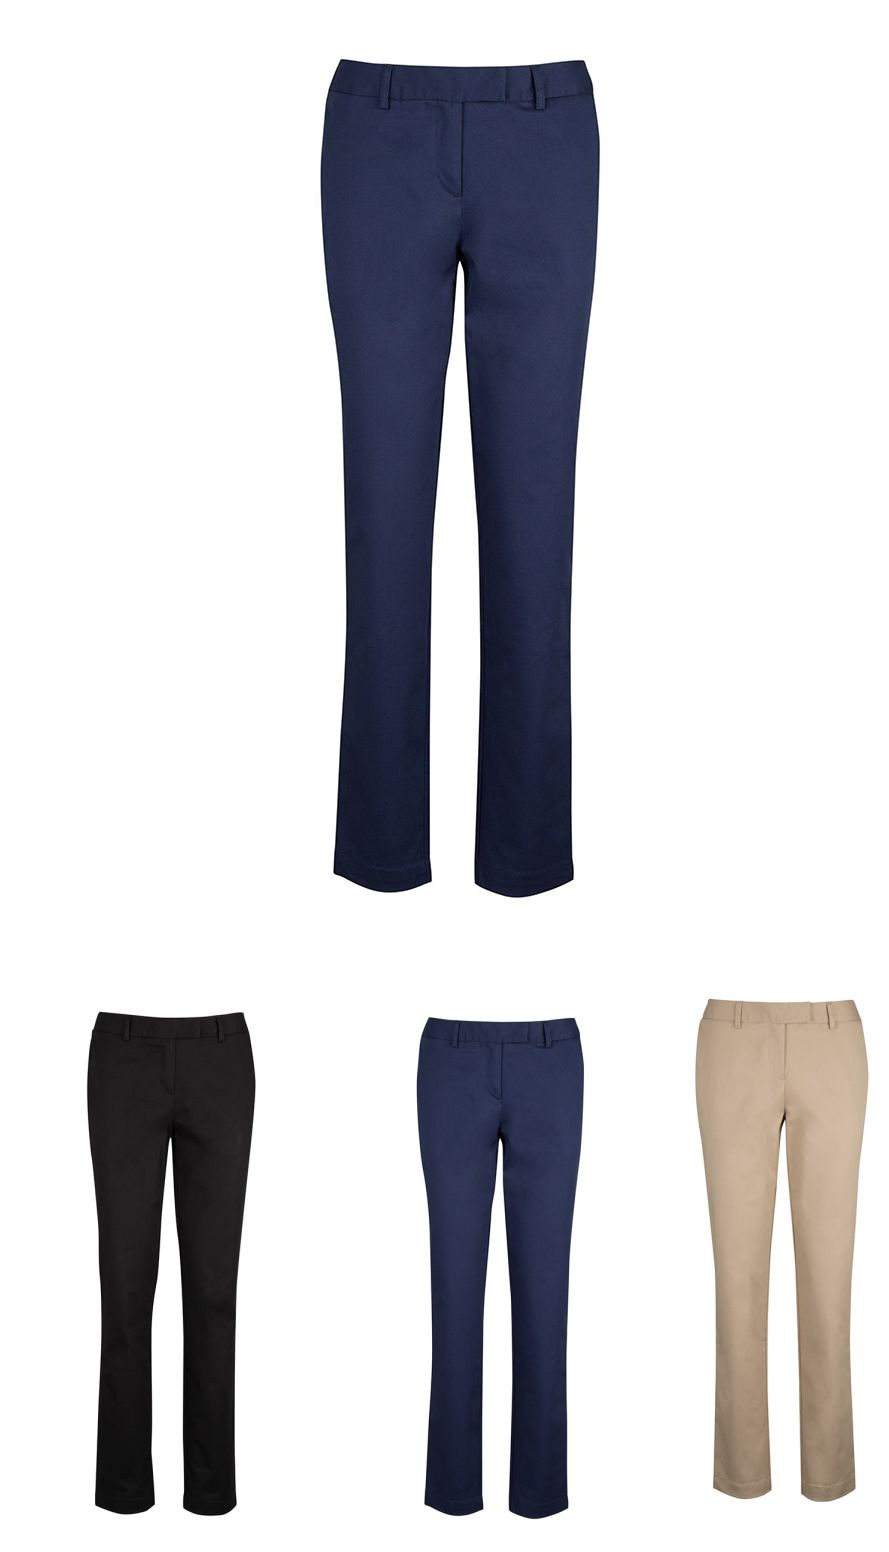 NF533 Essential Women's Chinos